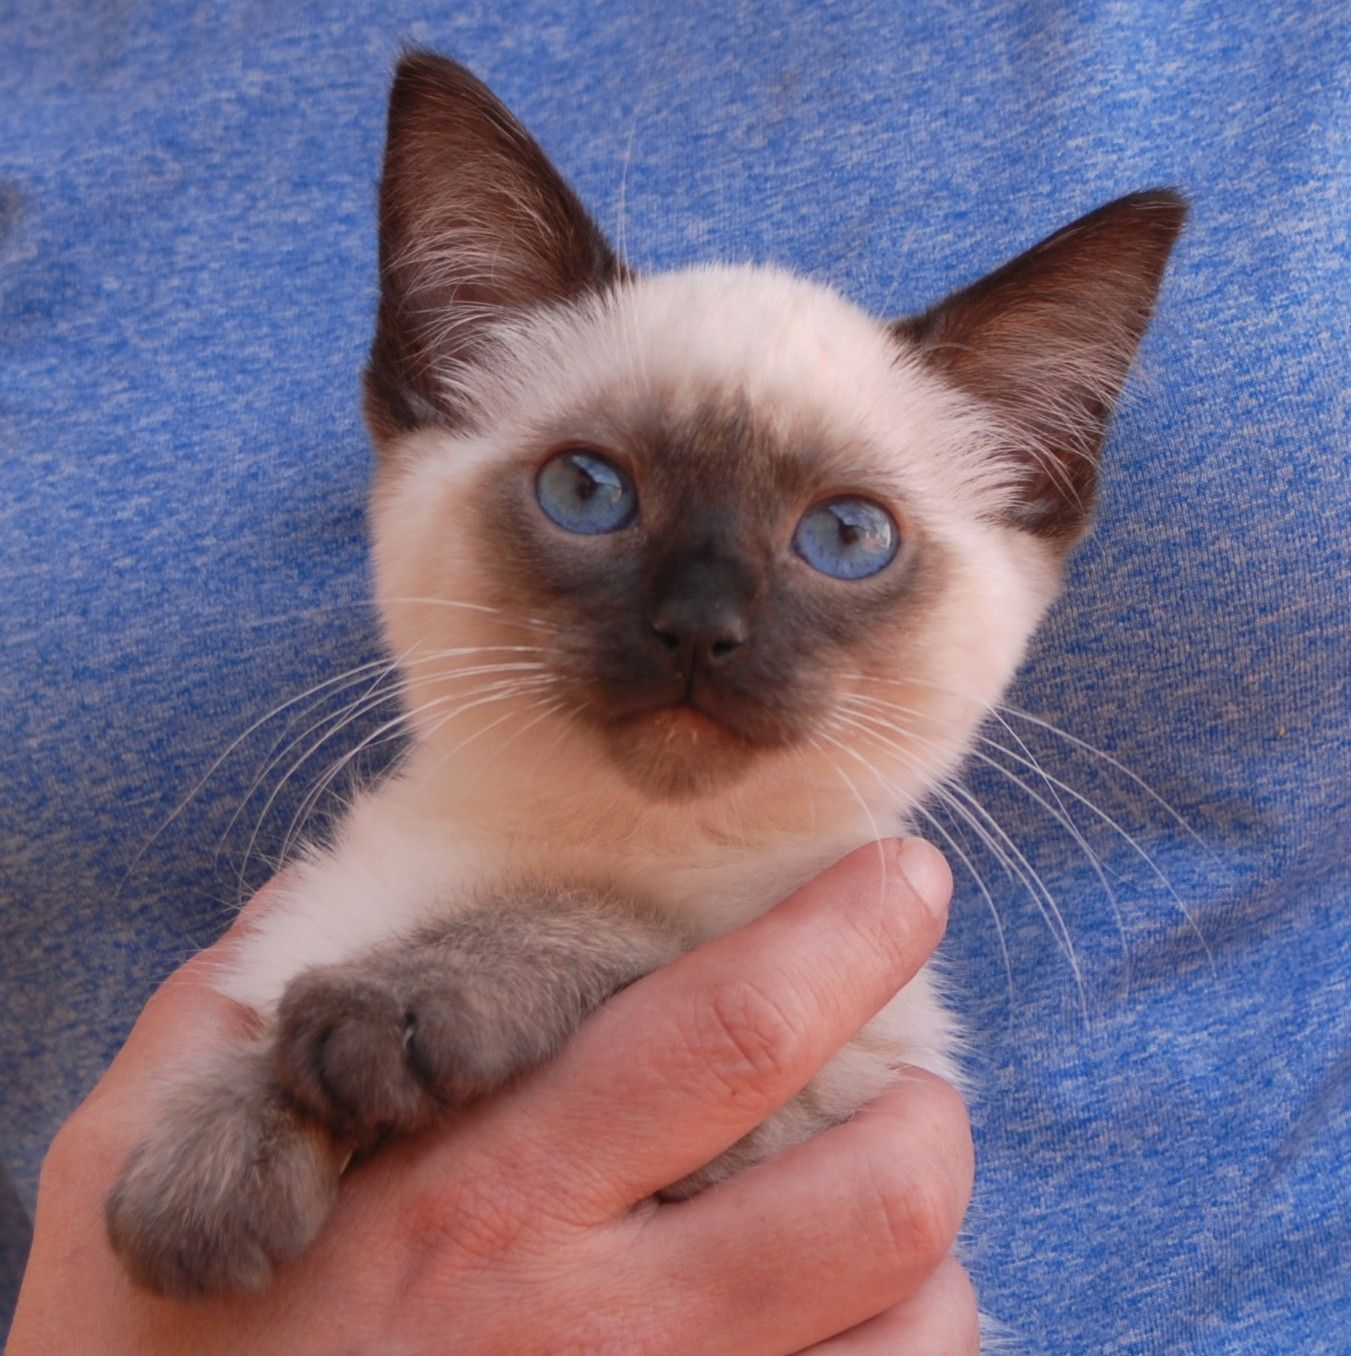 Paladin, a rescued Siamese kitten for adoption, blessed